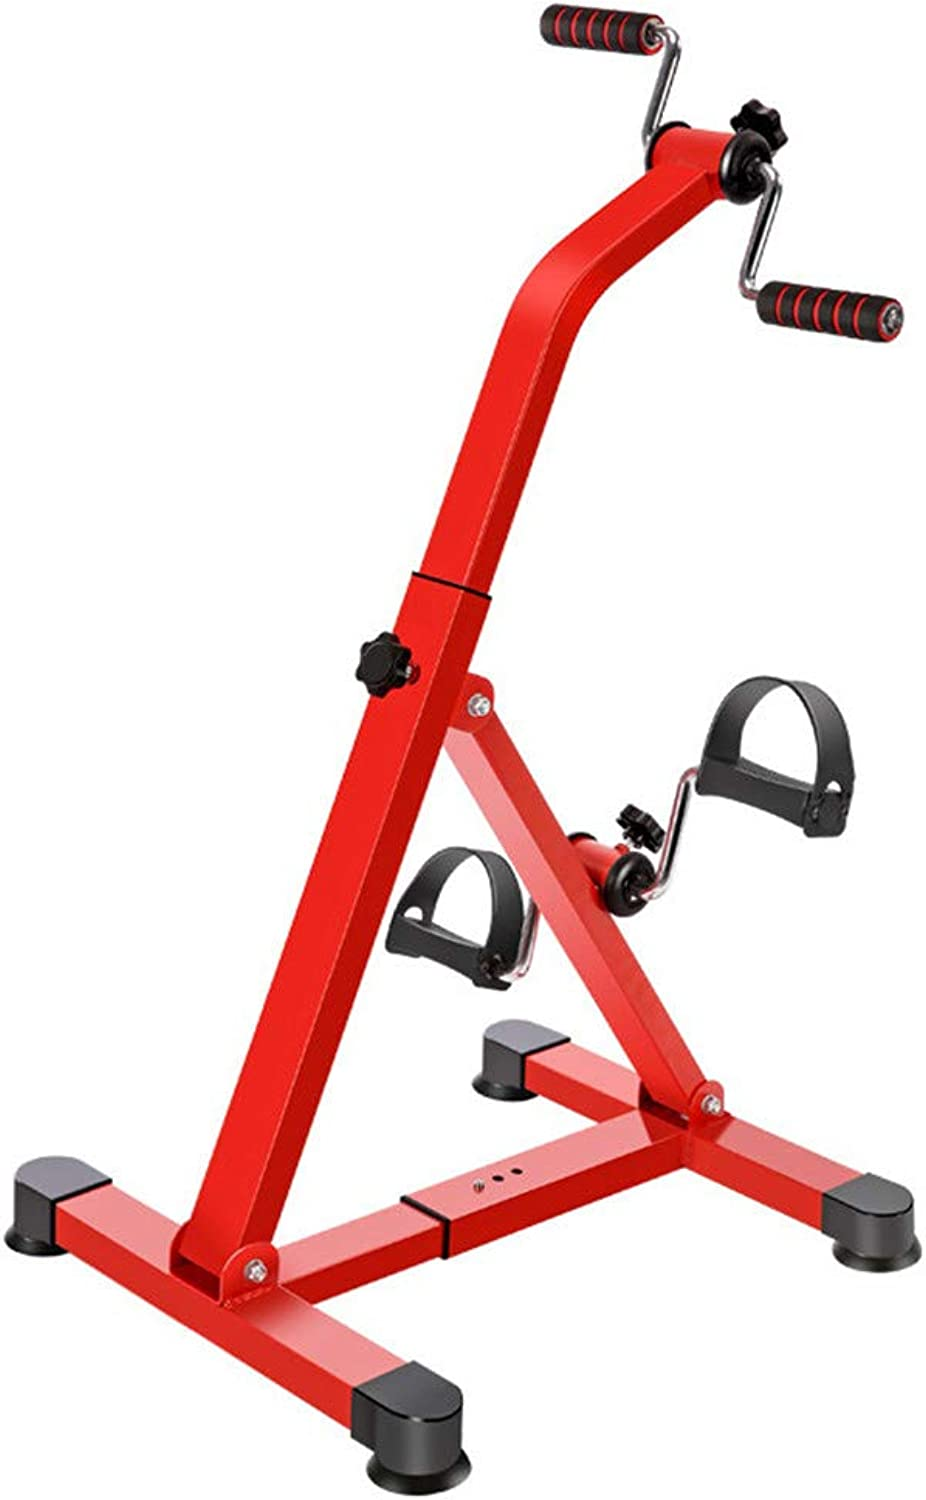 Pedal Exerciser  Portable Legs & Arms Workout Pedal Exerciser  Provides Superior Physical Workout with Tension Adjustment, Durable Construction with NonSlip Base,Red